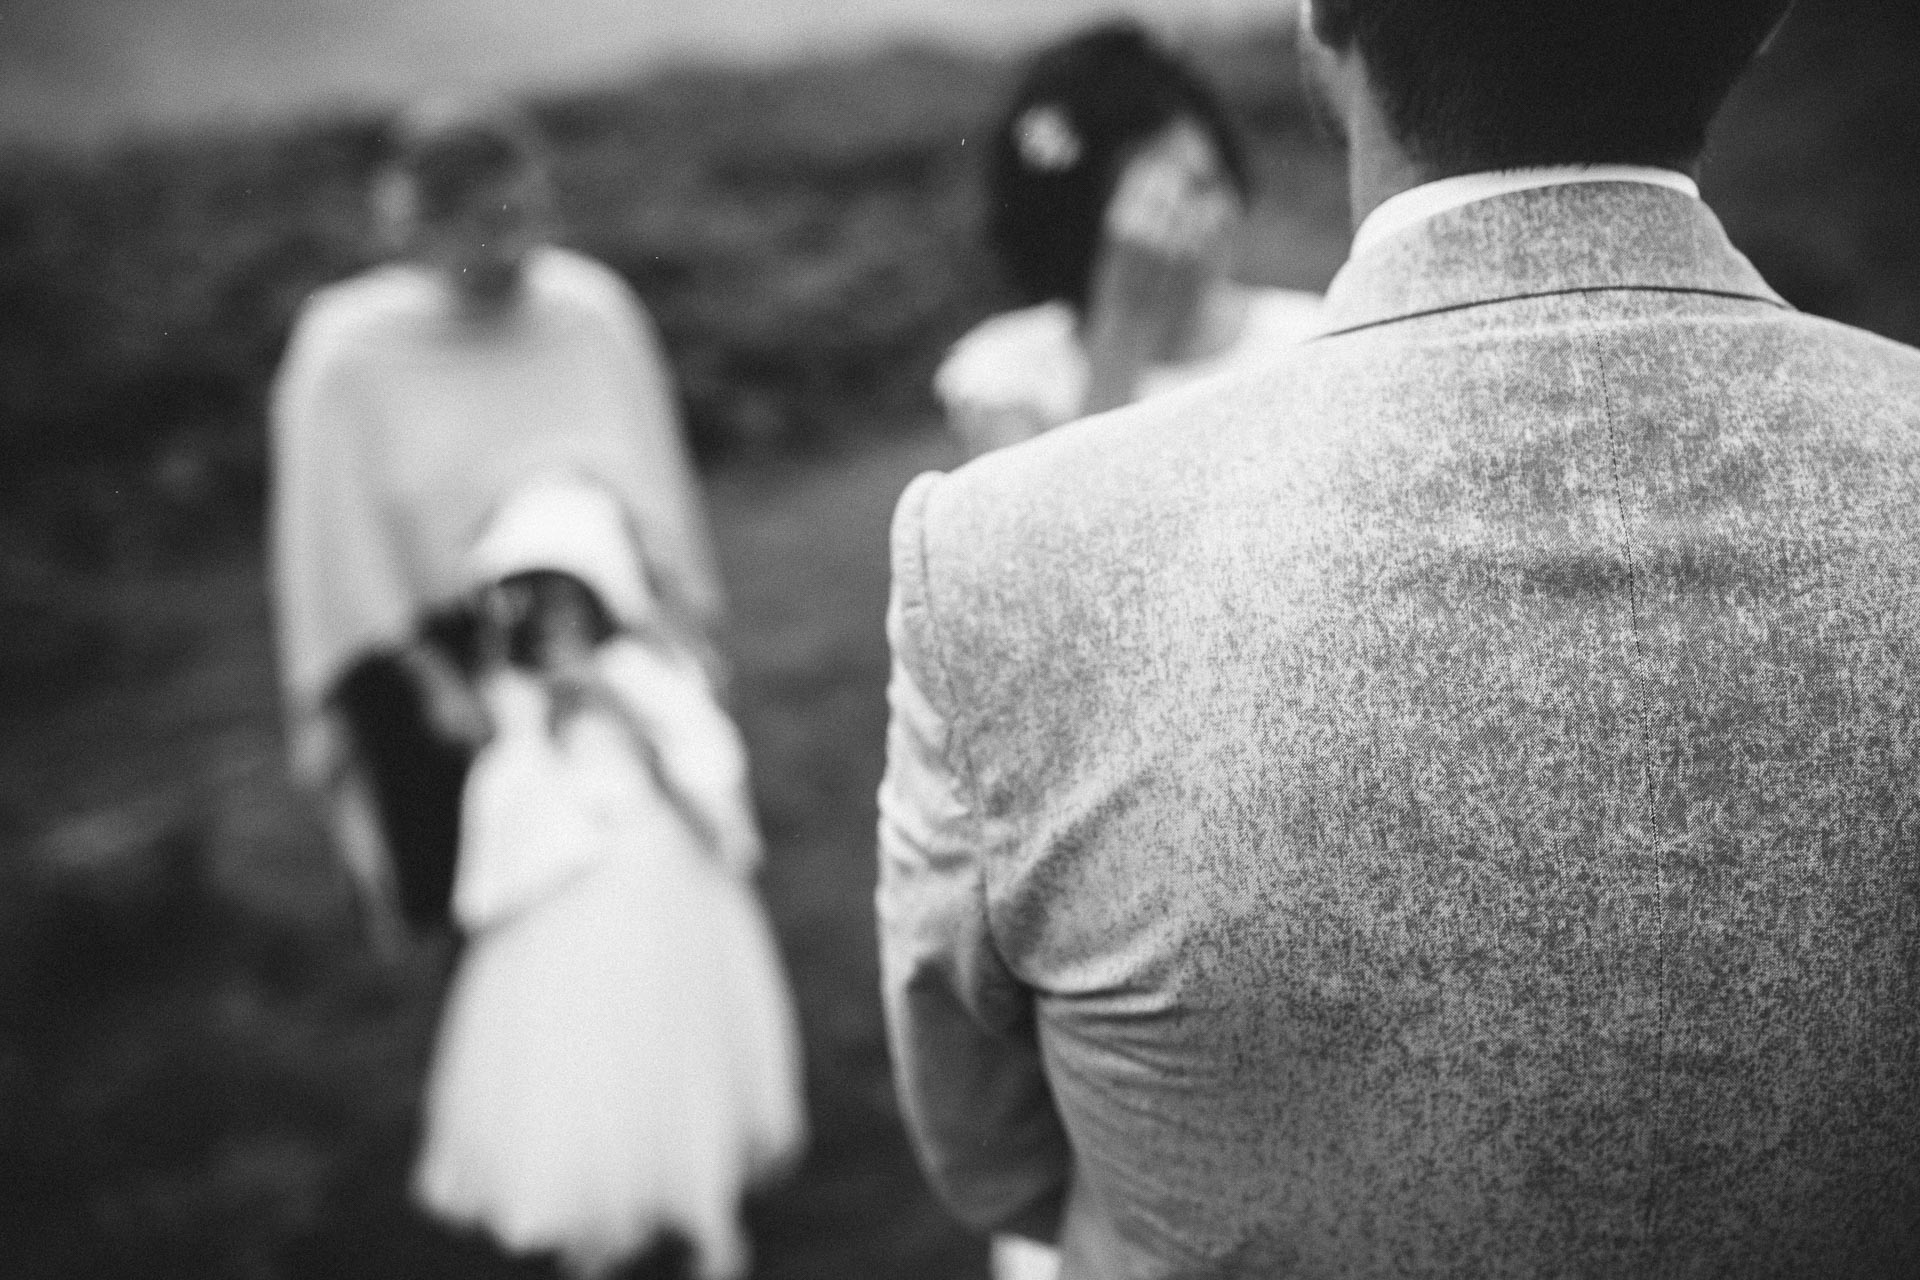 Megan_Matt_Elopement_IntimateWedding_Scotland_IsleOfSkye_JeanLaurentGaudy_068